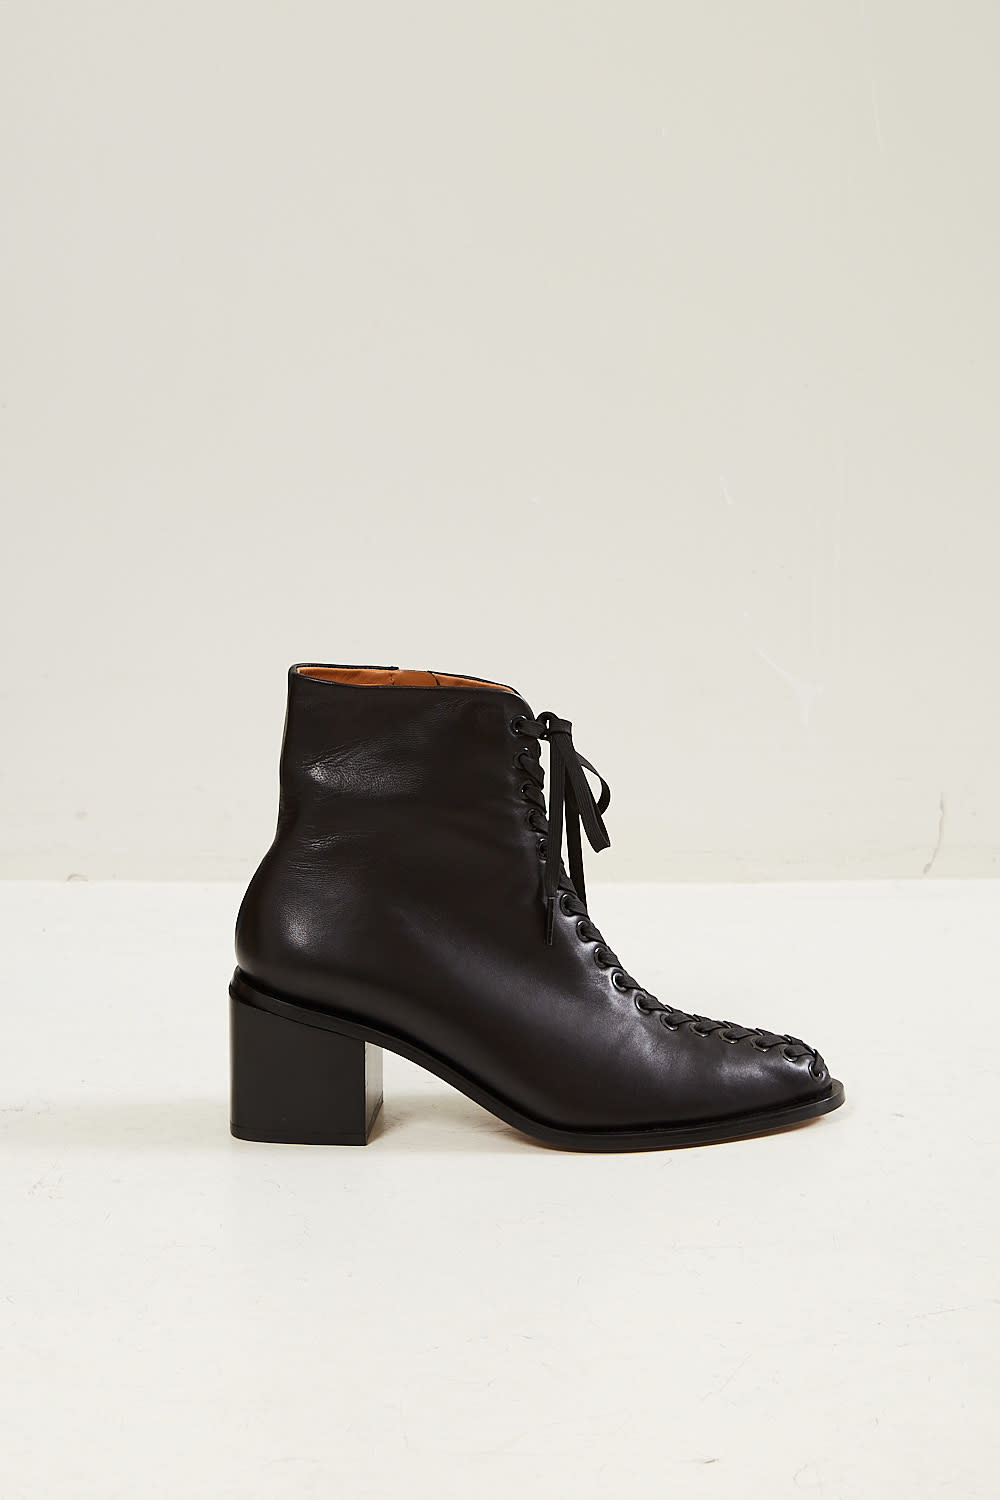 Clergerie - Xannie lambs leather boots